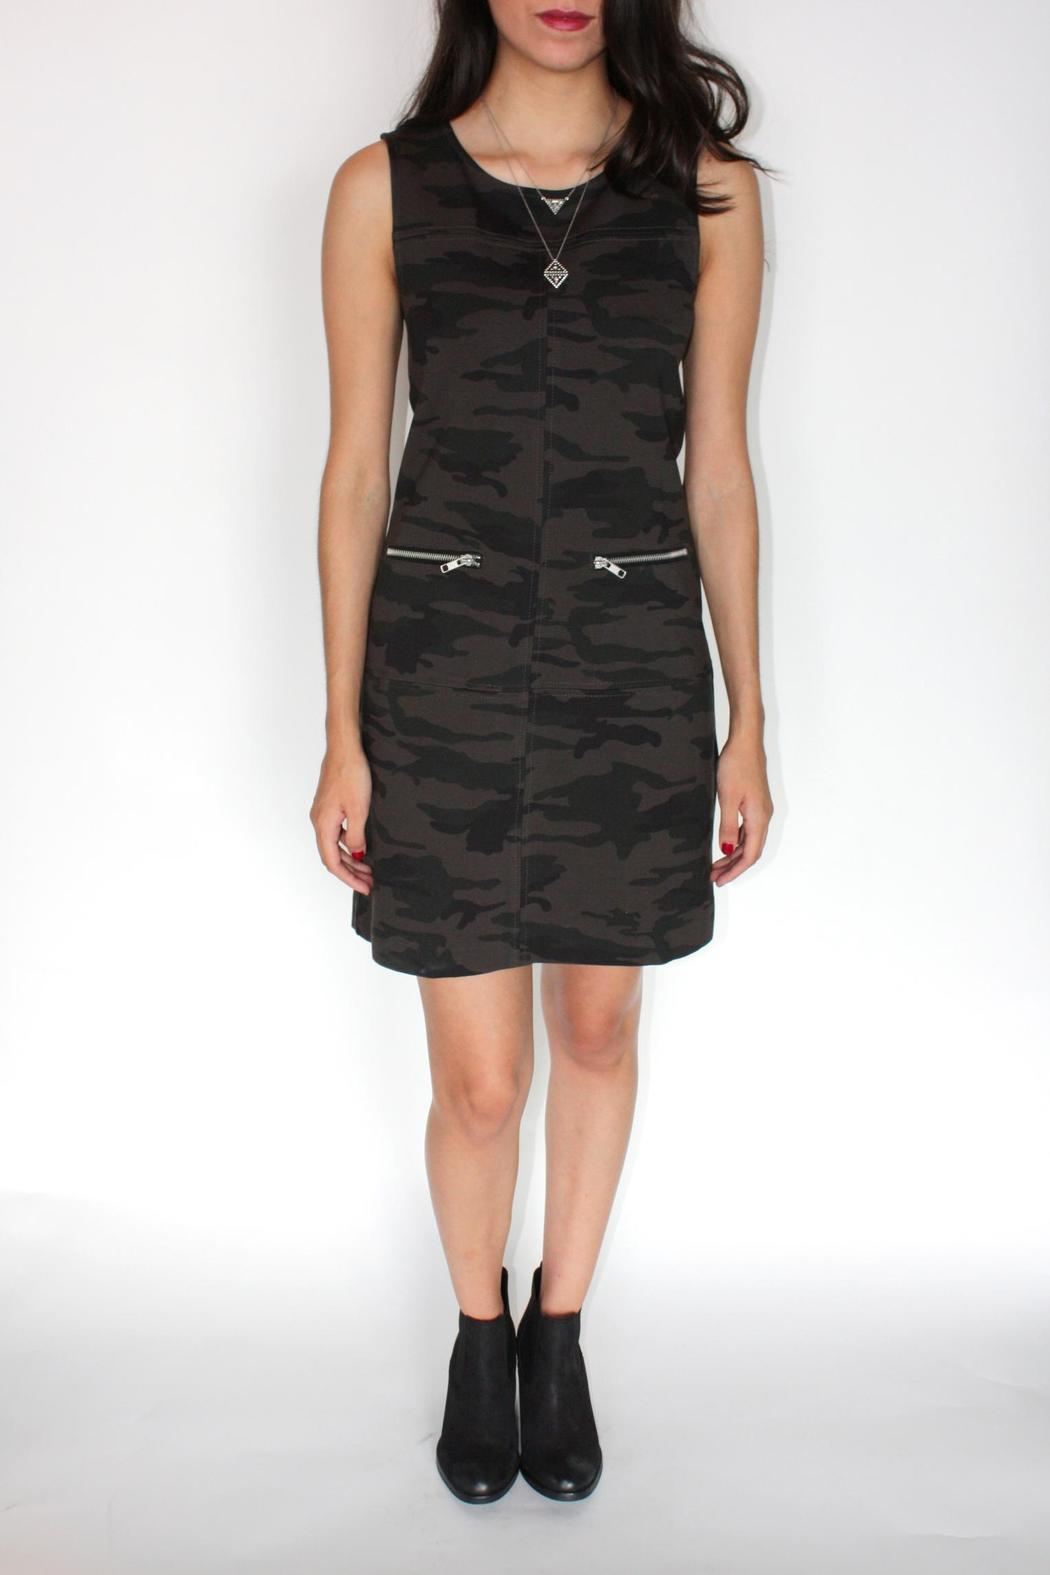 Sanctuary Clothing Mod Molly Dress from Texas by J Luxe ...